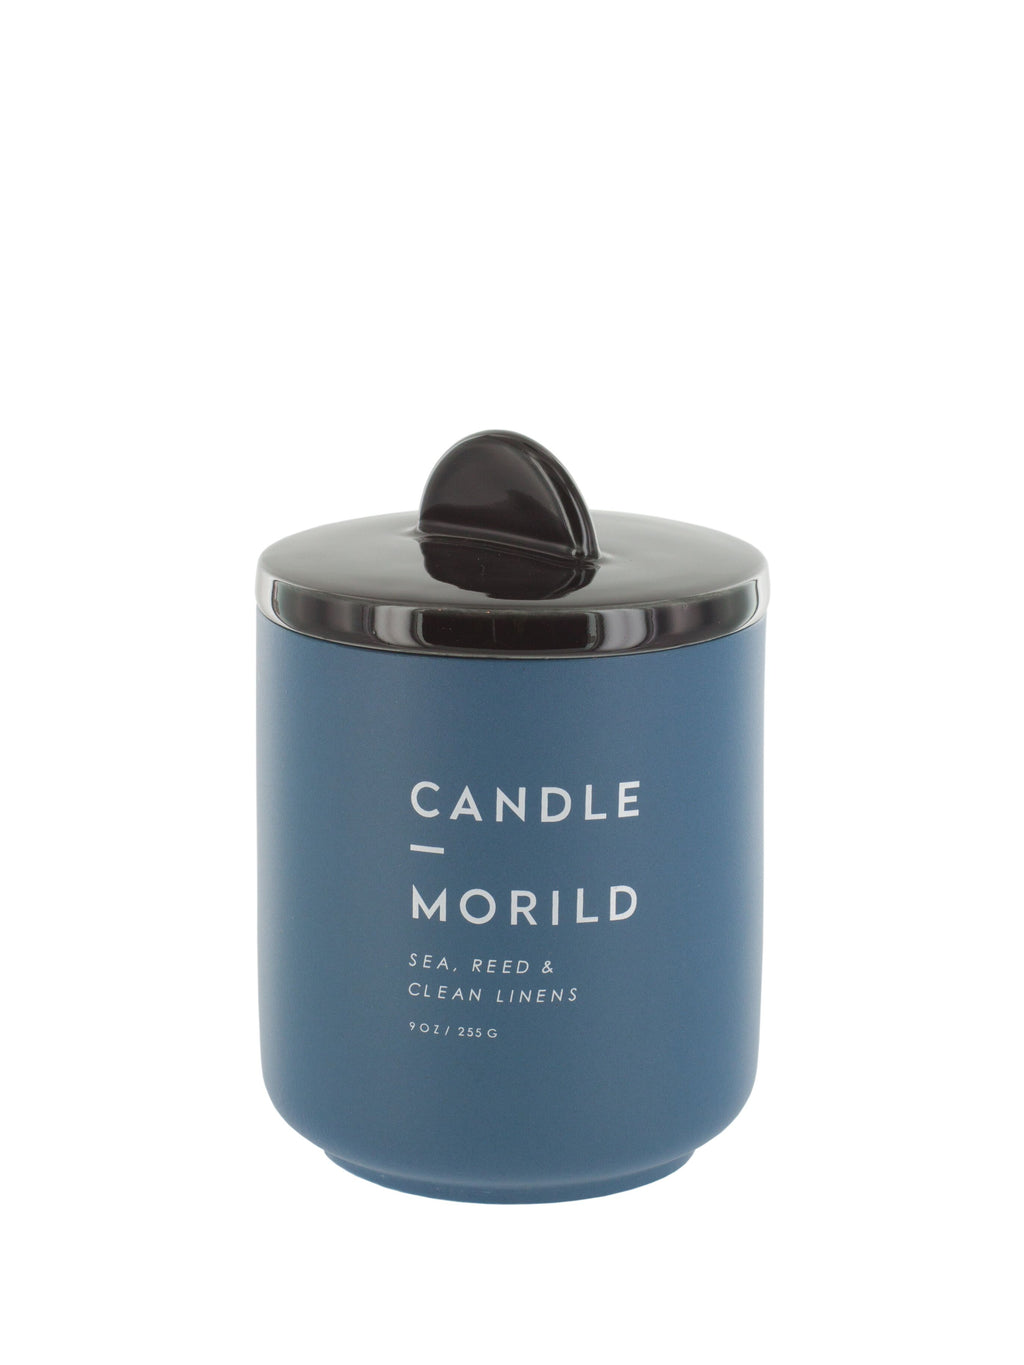 Morild Candle